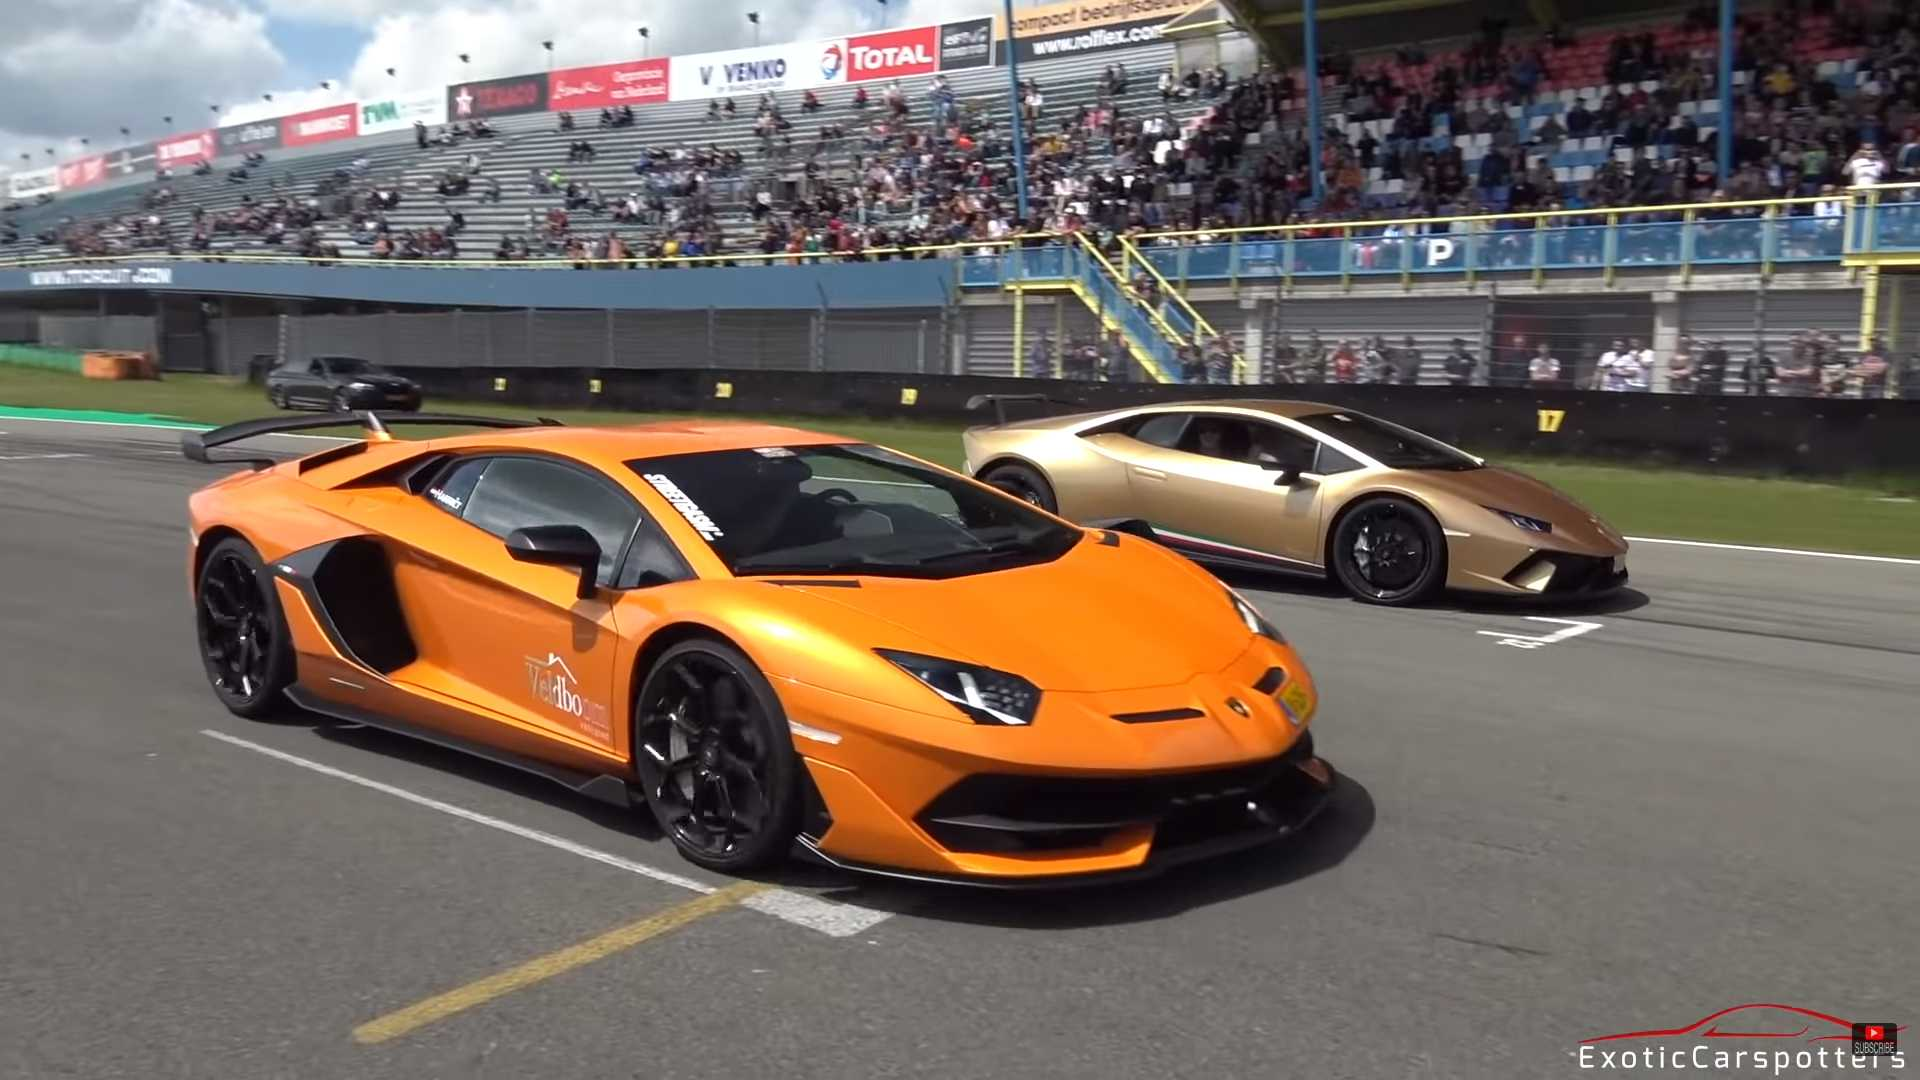 Aventador SVJ, 1,200-HP GT-R And A Host Of Supercars Go Drag Racing